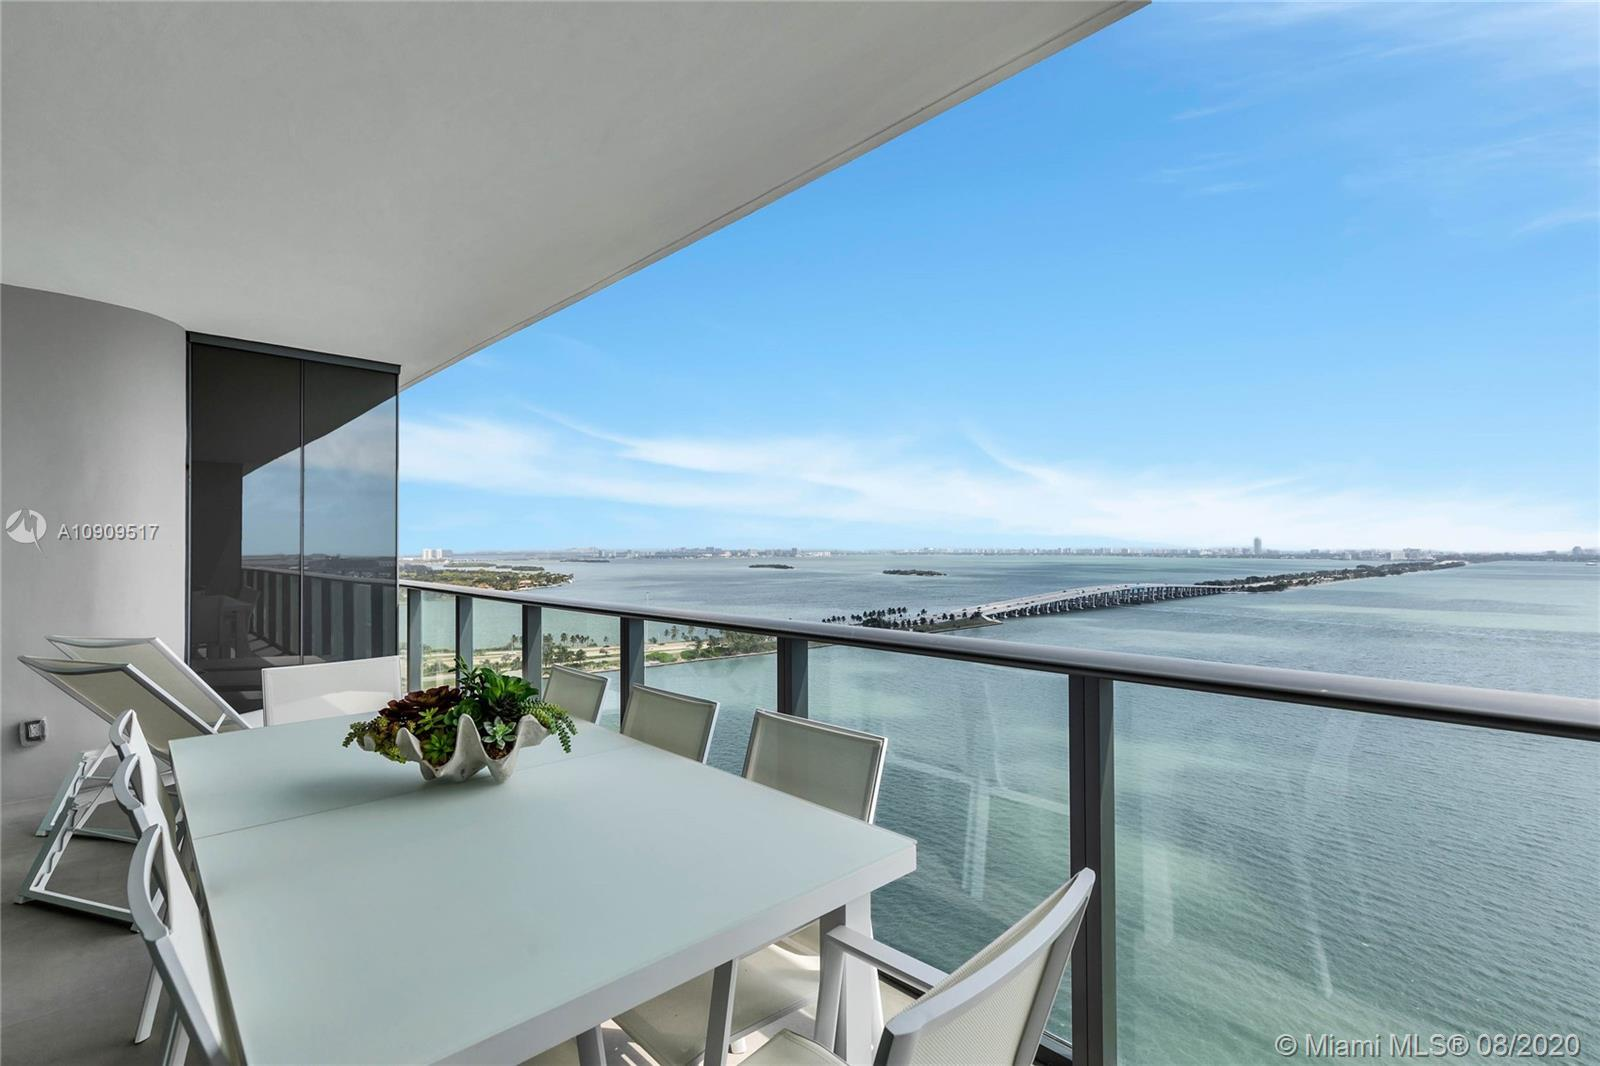 Available  Must see Unit Completely upgraded, designer furniture. one of the most beautiful unit in